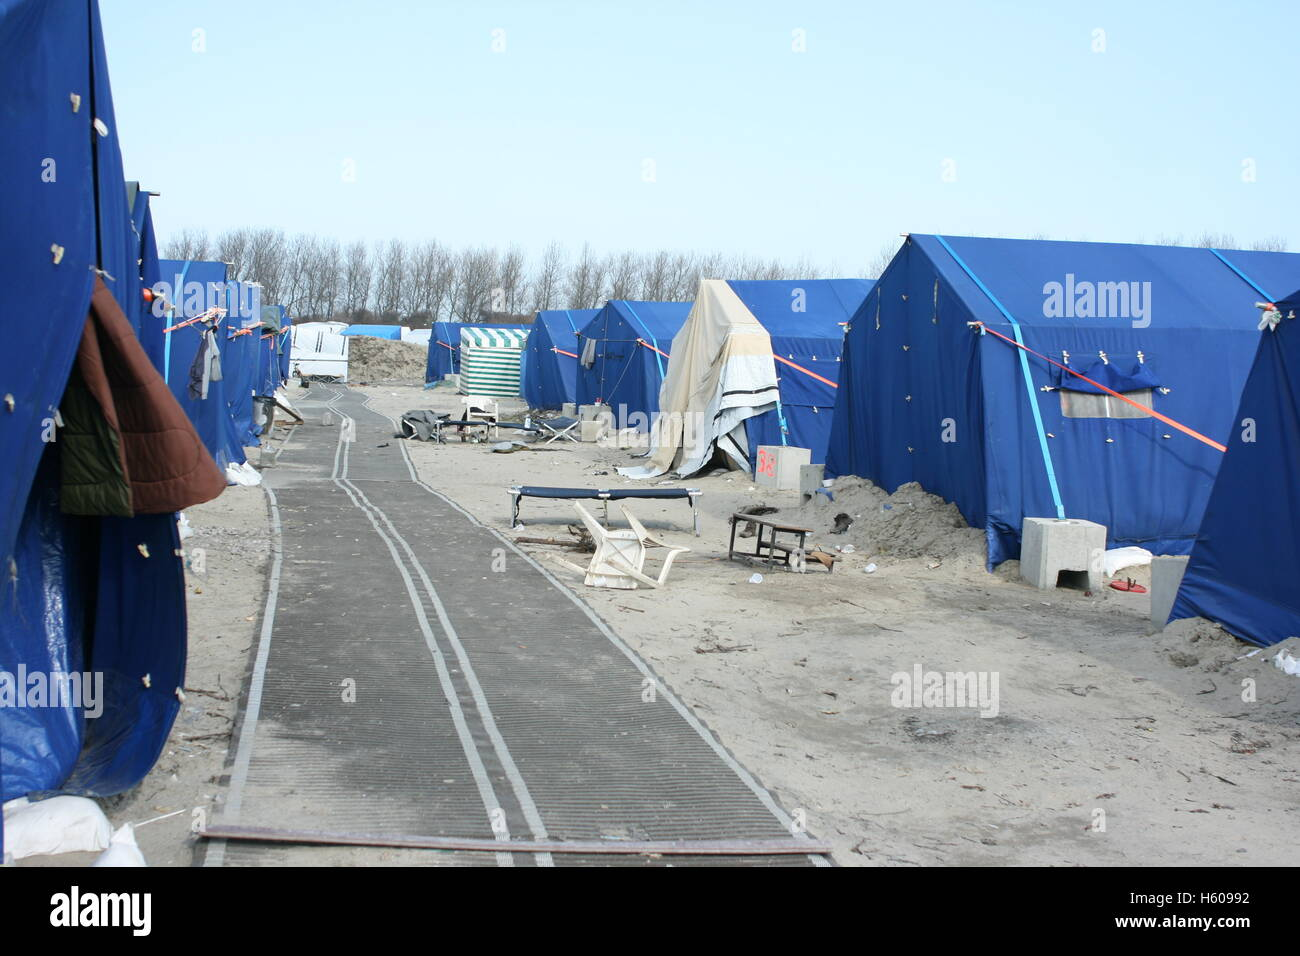 Blue tents are set up by aid organisations to give the residents of Calais refugee camp a more secure, warm and - Stock Image